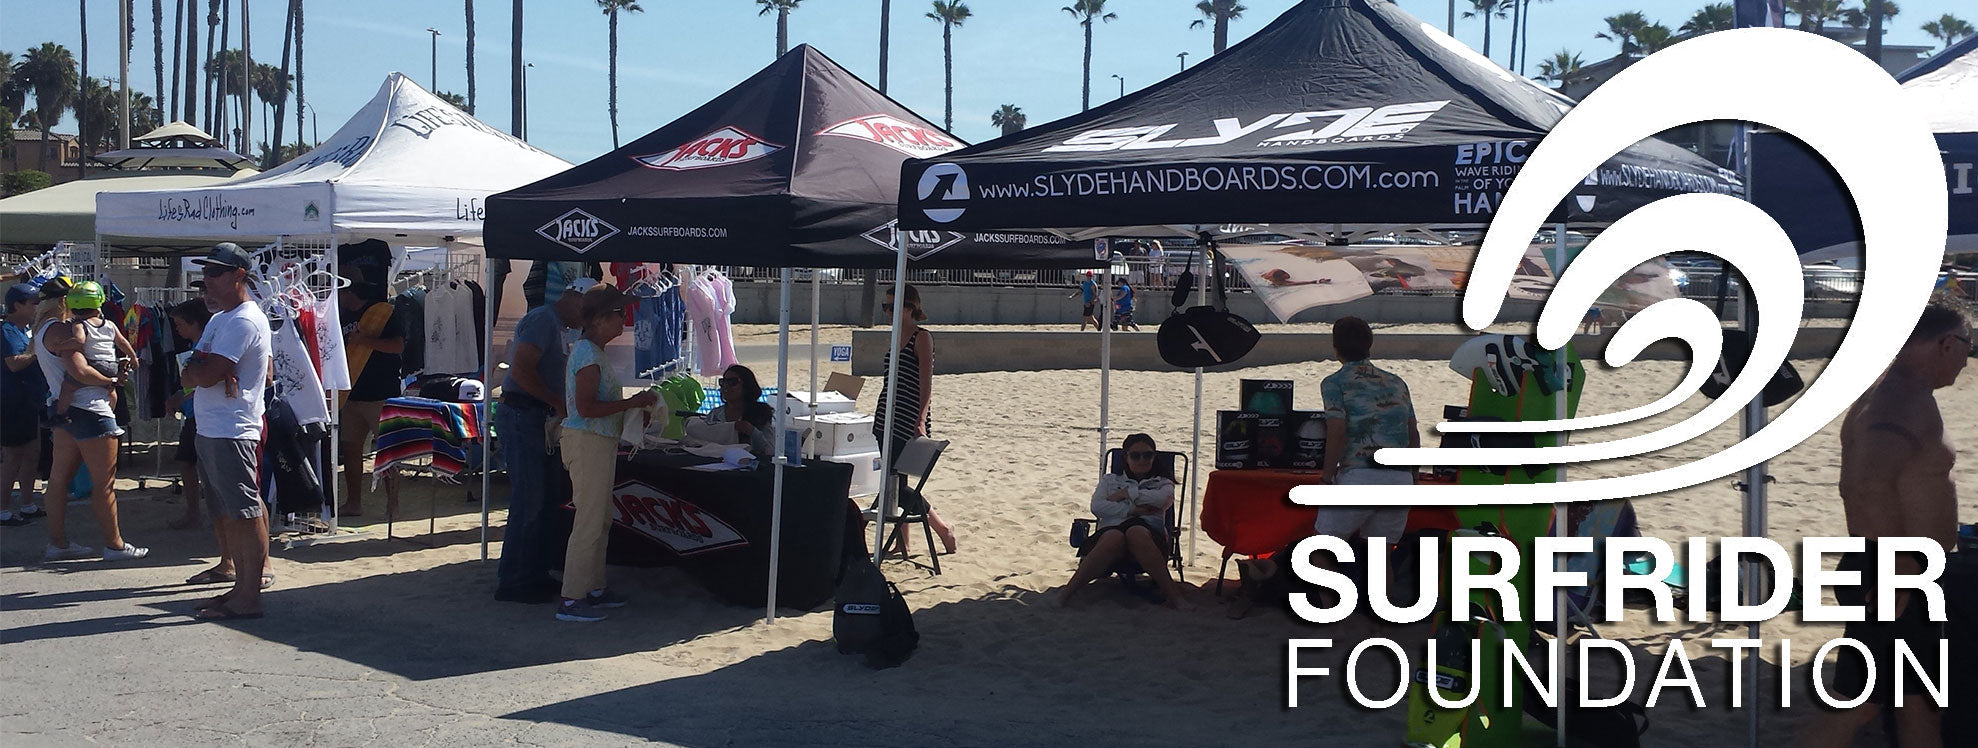 Surfrider and slydehandboards in huntington beach